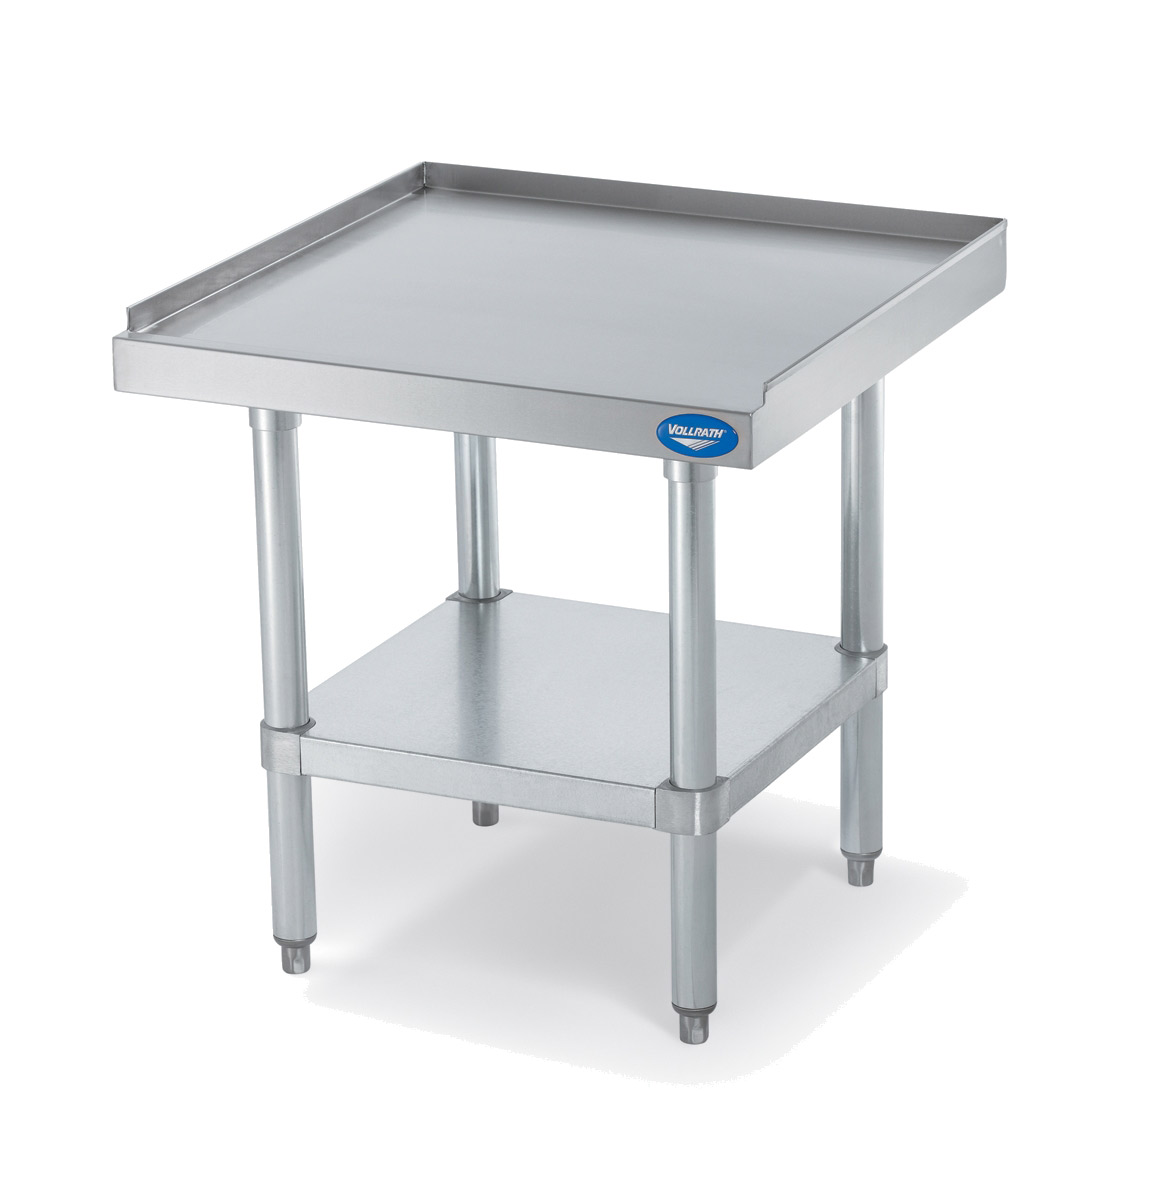 Vollrath 40742 equipment stand, for countertop cooking